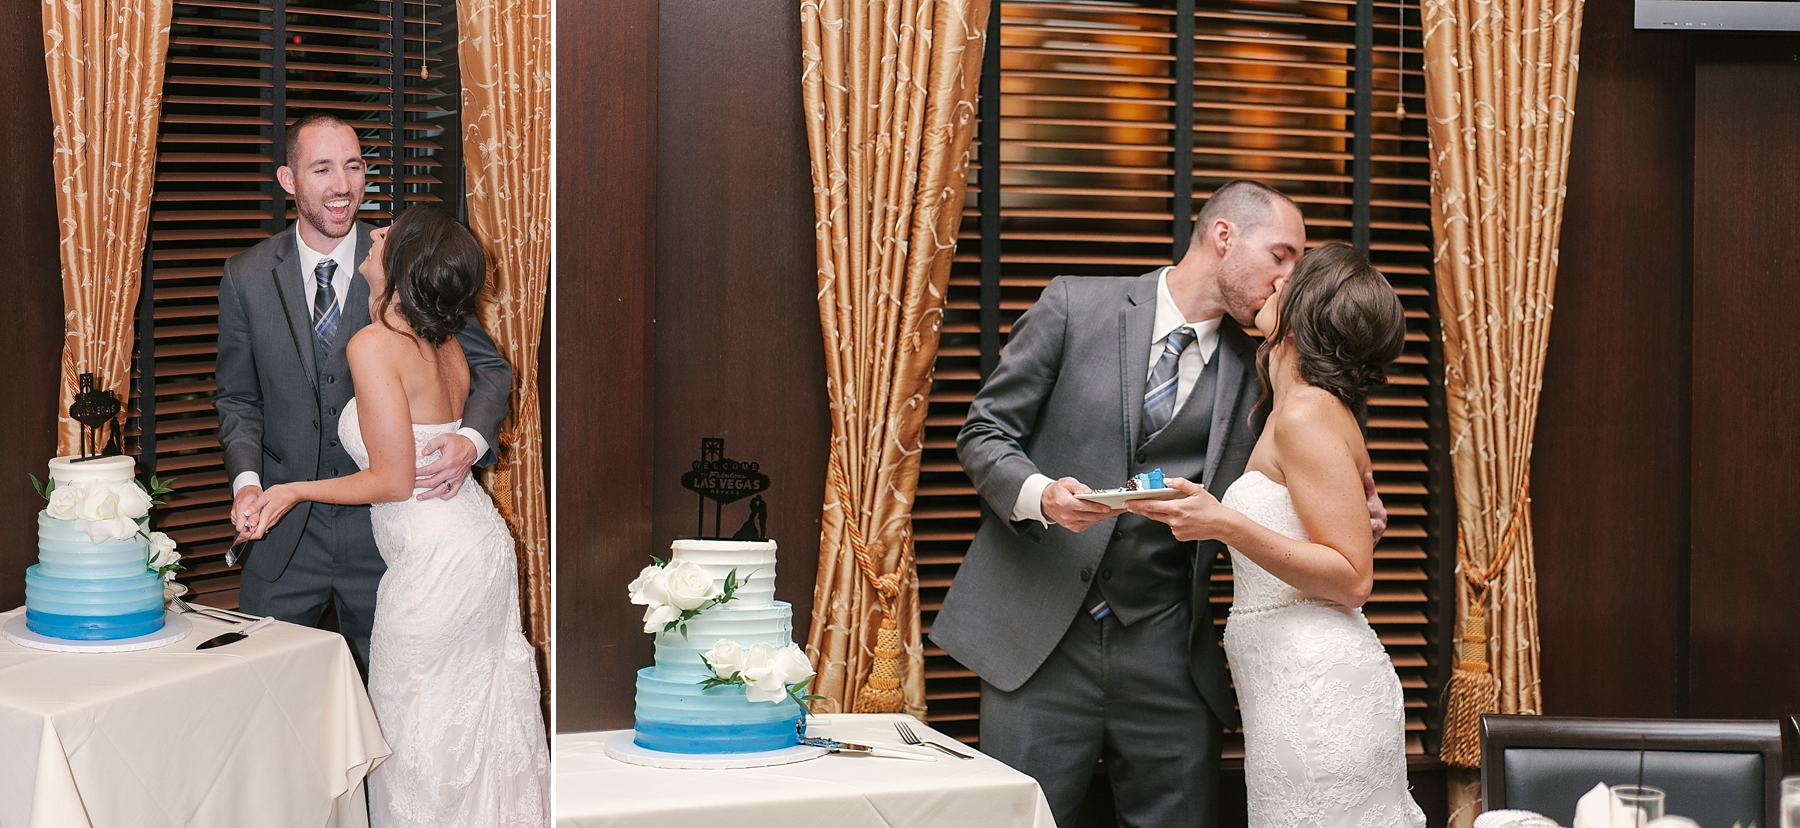 las_vegas_caesars_palace_joes_seafood_Wedding_photos-42.jpg